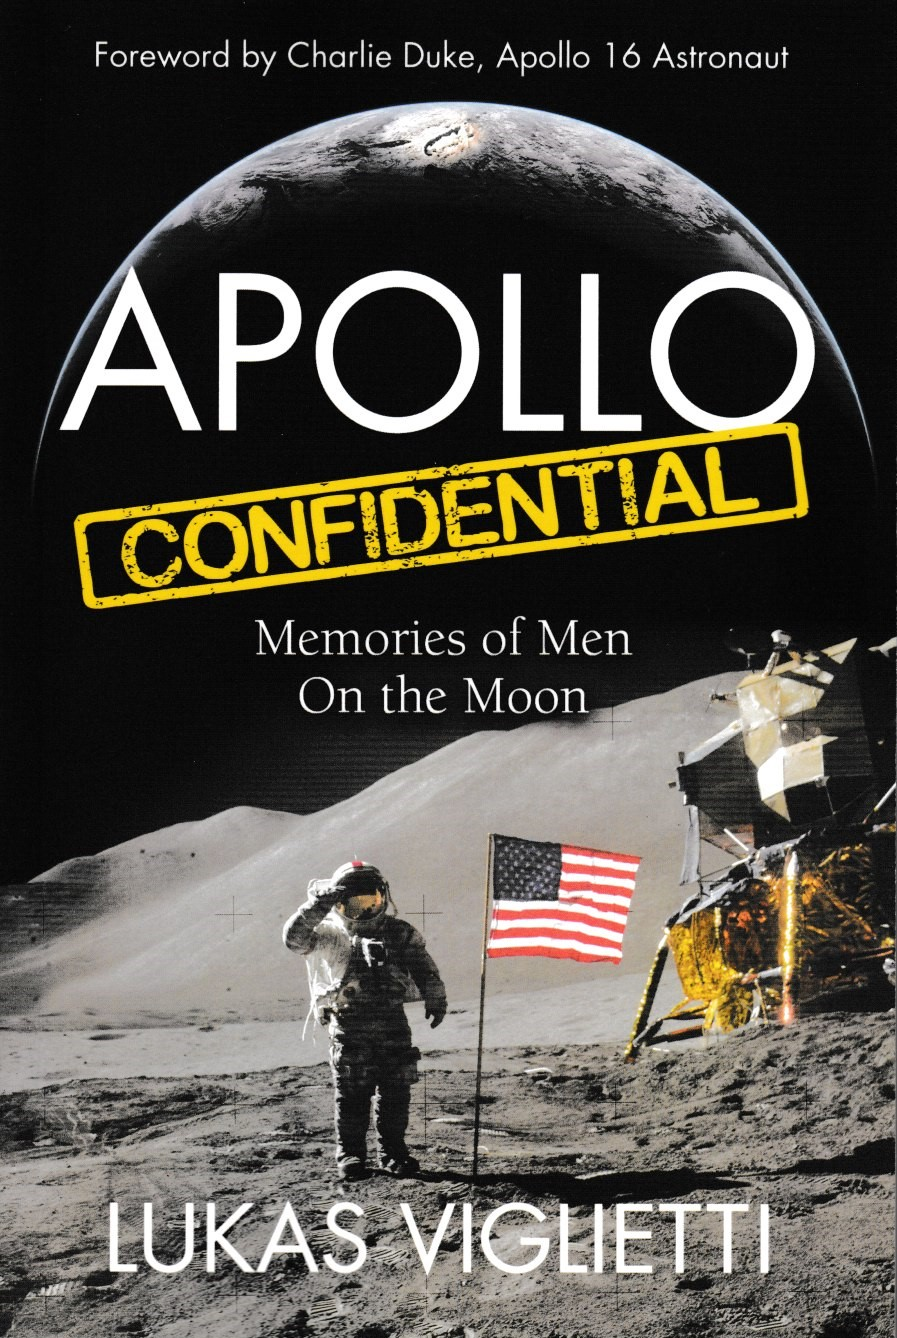 Apollo Confidential : Memories of Men On the Moon  Lukas Viglietti (French to English translator)